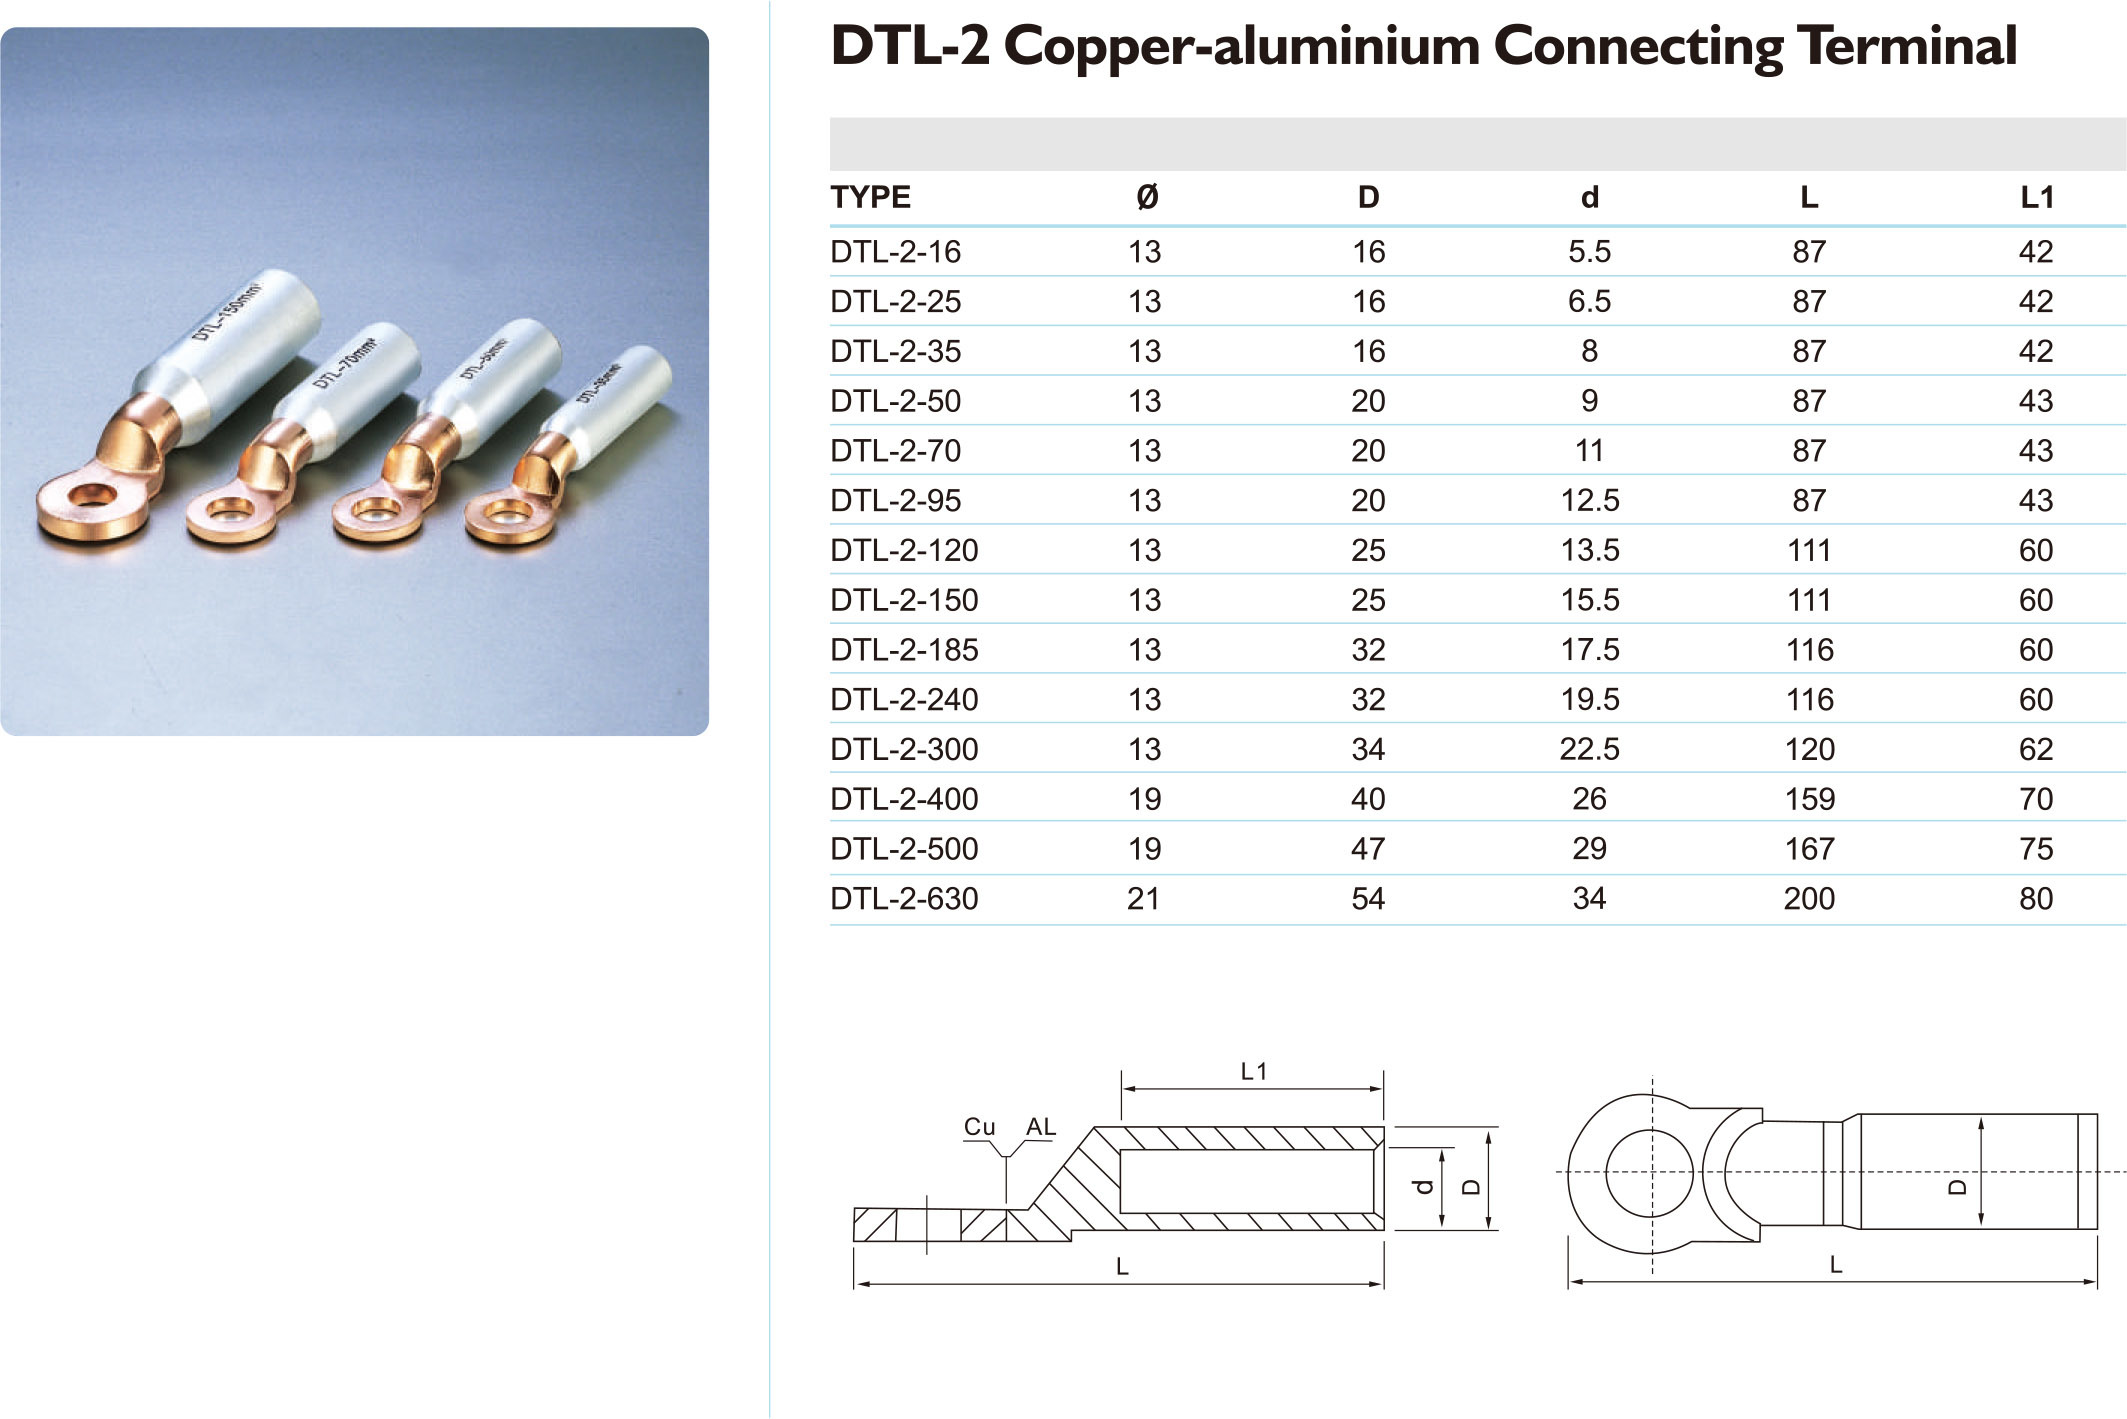 China Naked Copper Aluminium Dtl 2 Connecting Terminal Wire Aluminum Wiring Connectors Connector